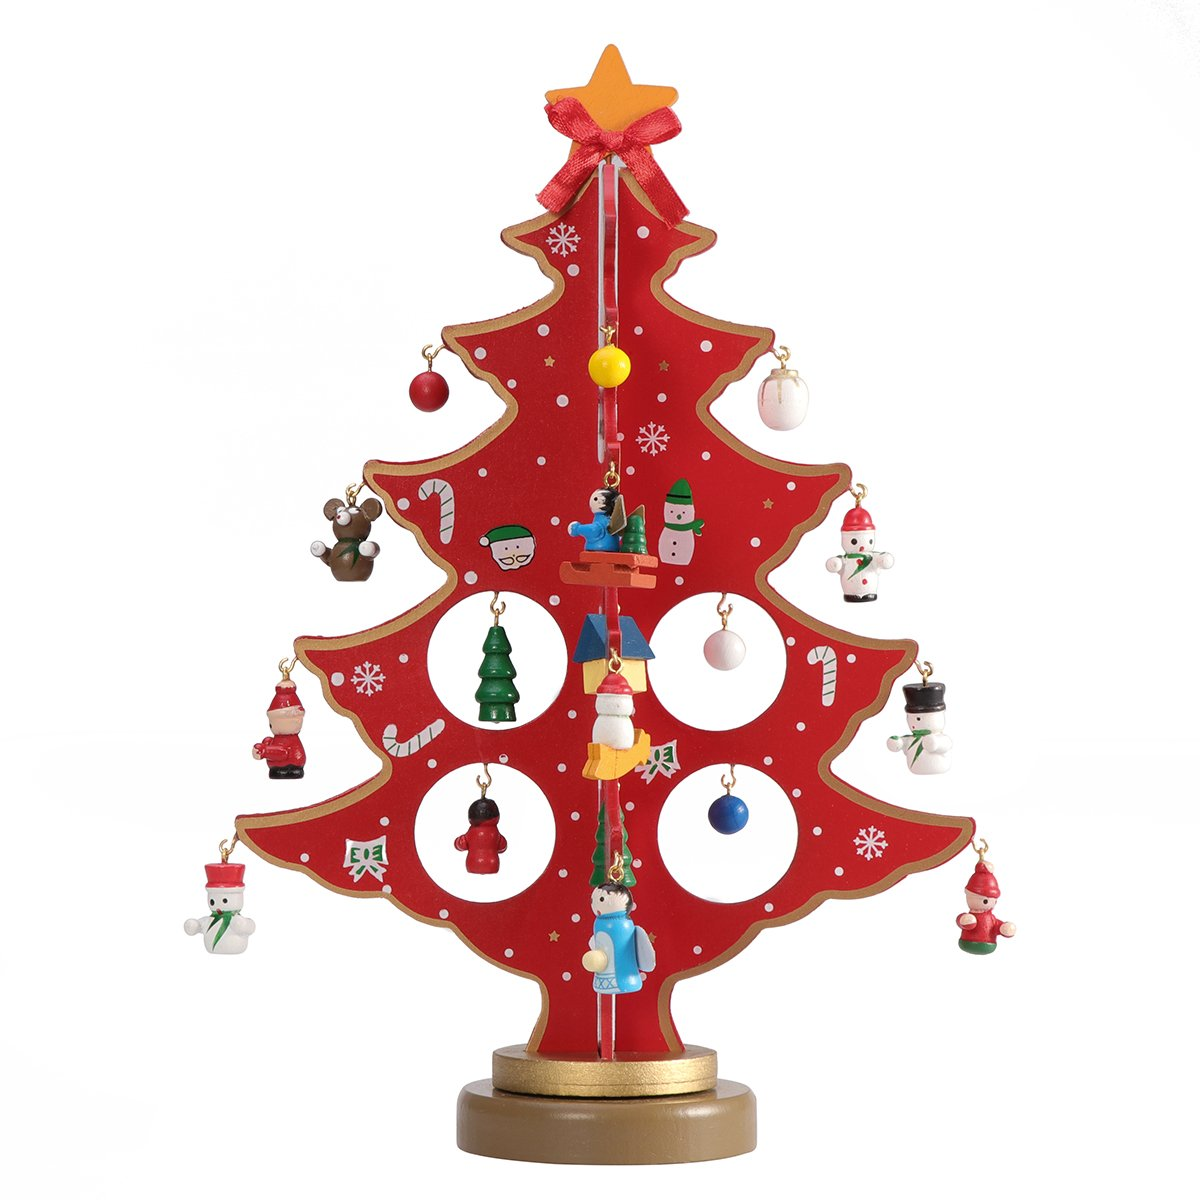 Tinksky Miniature Christmas Ornaments Wooden Mini Christmas Tree Desktop Tabletop Decoration Arts and Crafts Centerpiece Kids Children Gift Teaching Reward Home Party Wedding Decor 30CM (Red)